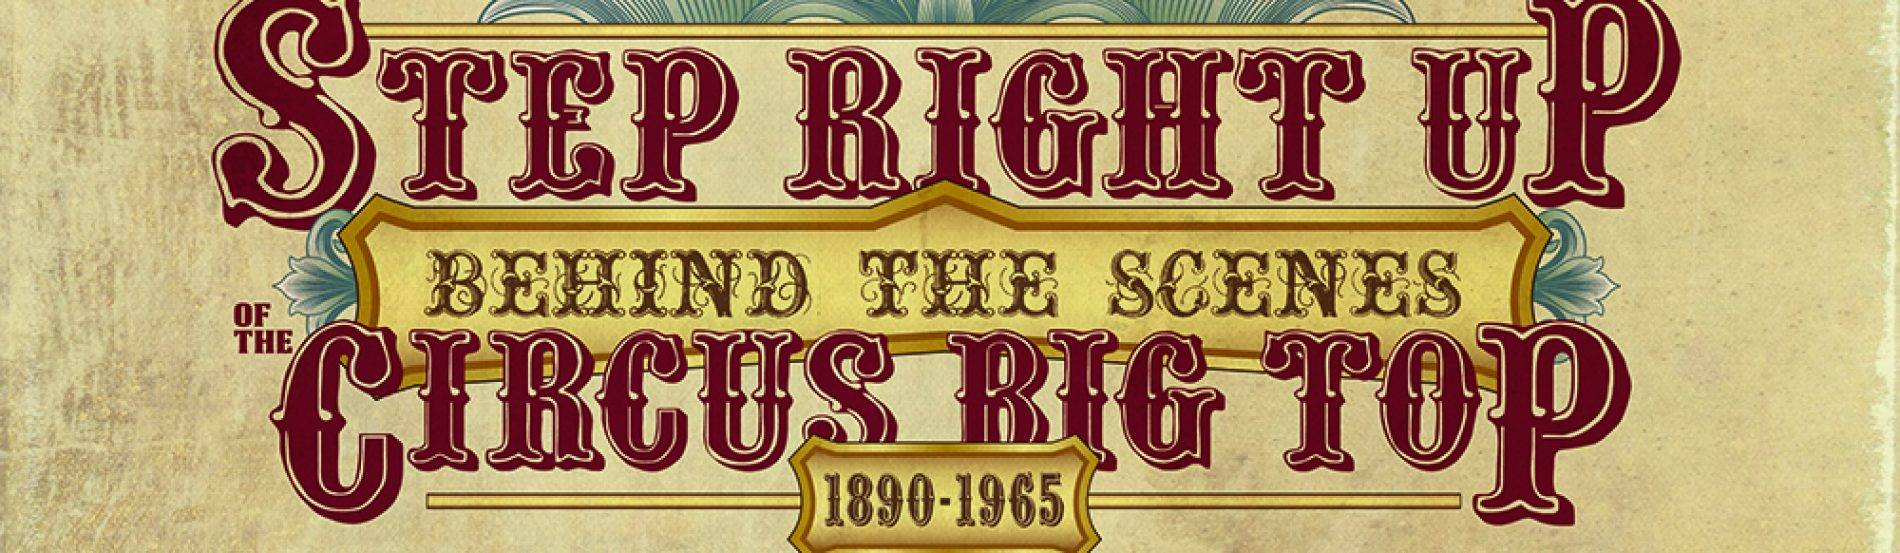 Step Right Up Exhibit logo